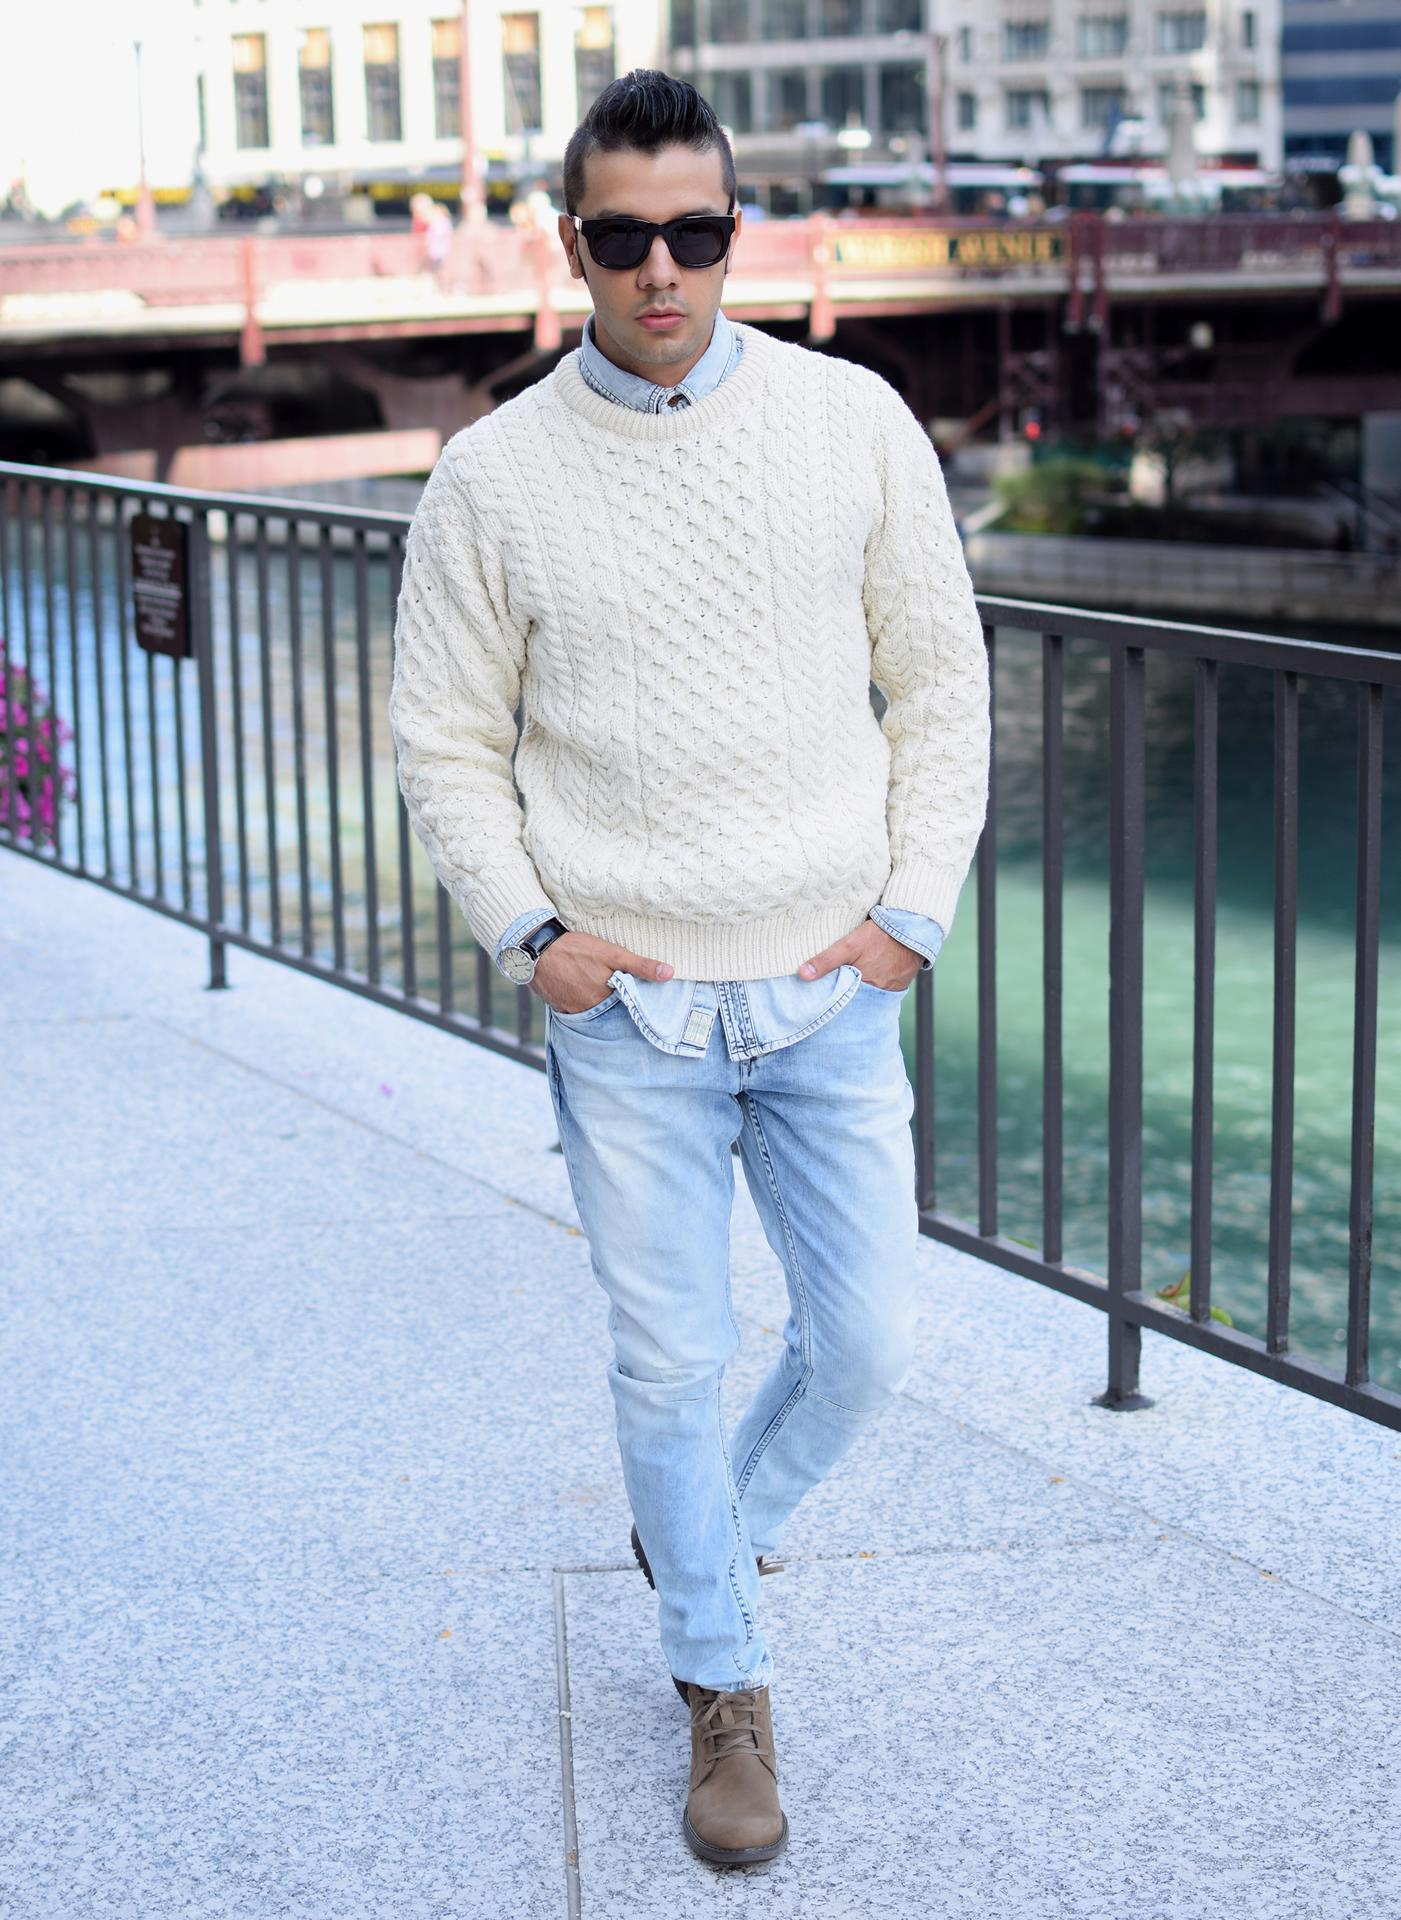 Men's Beige Cable Sweater, Light Blue Denim Shirt, Light Blue ...